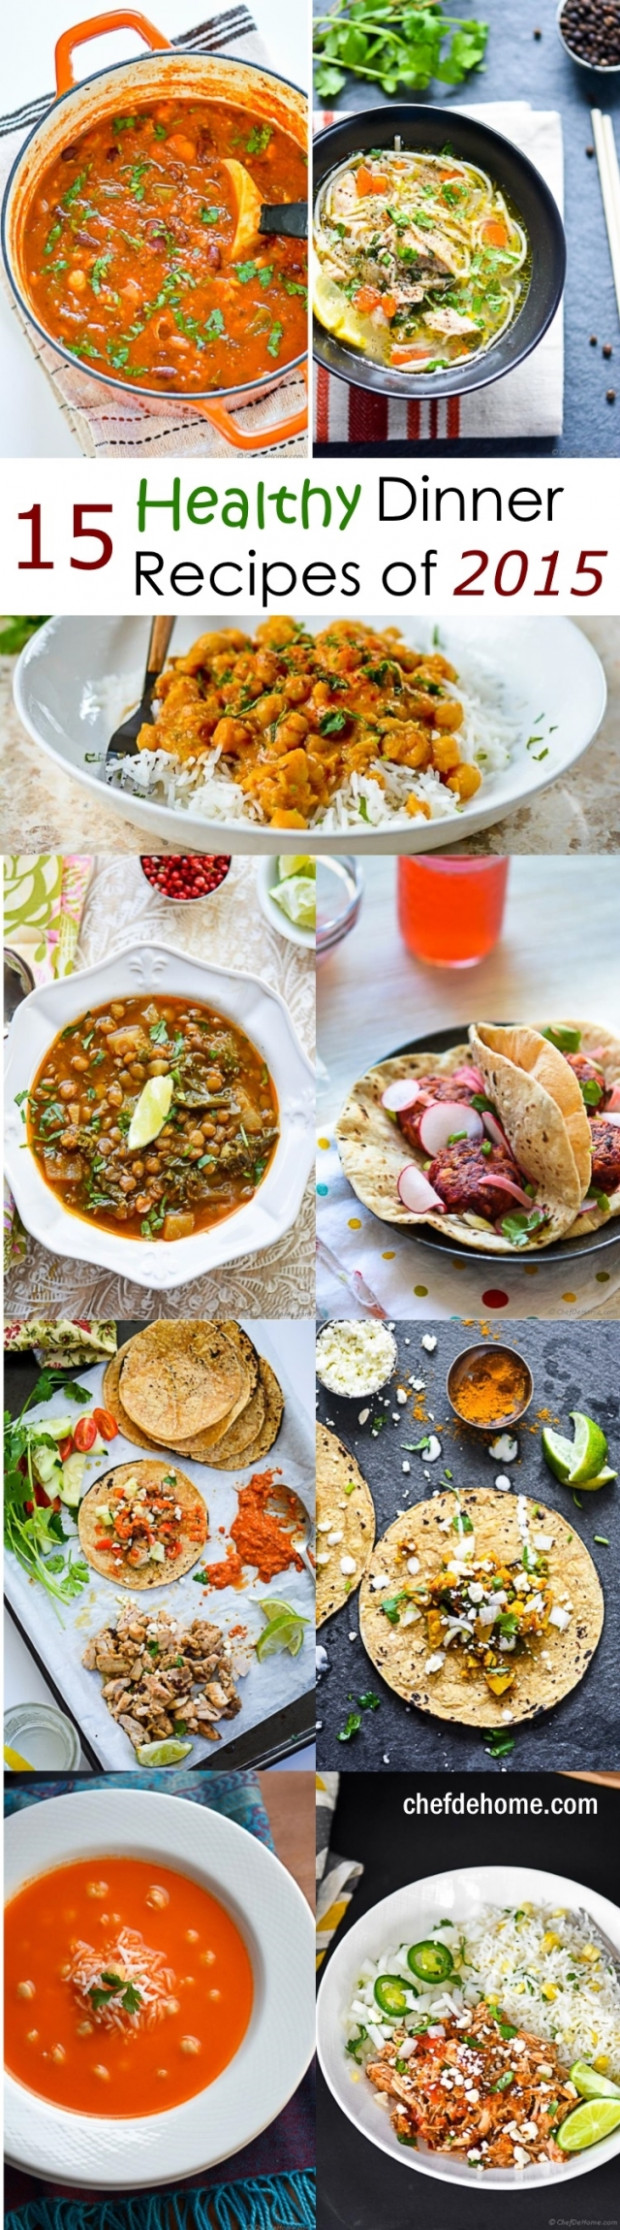 15 Top Healthy Dinner Recipes for New Year Meals ..